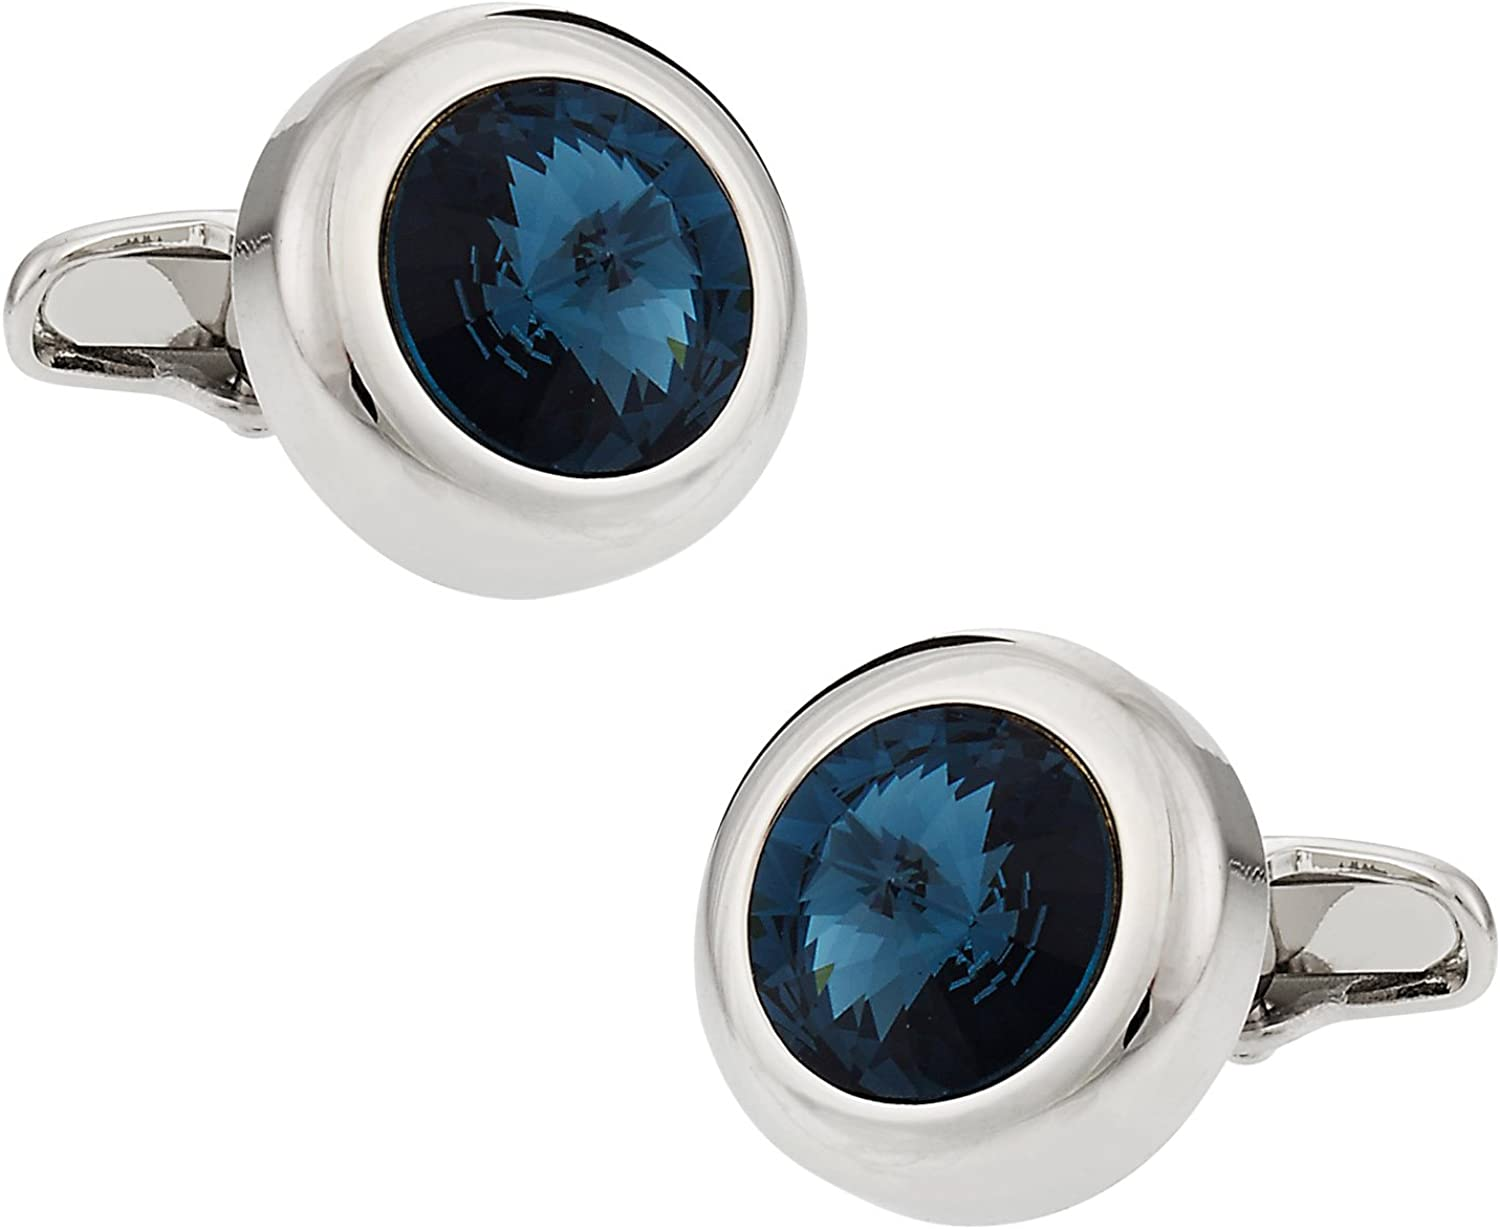 Crystal Solitaire Cufflinks in Montana Blue